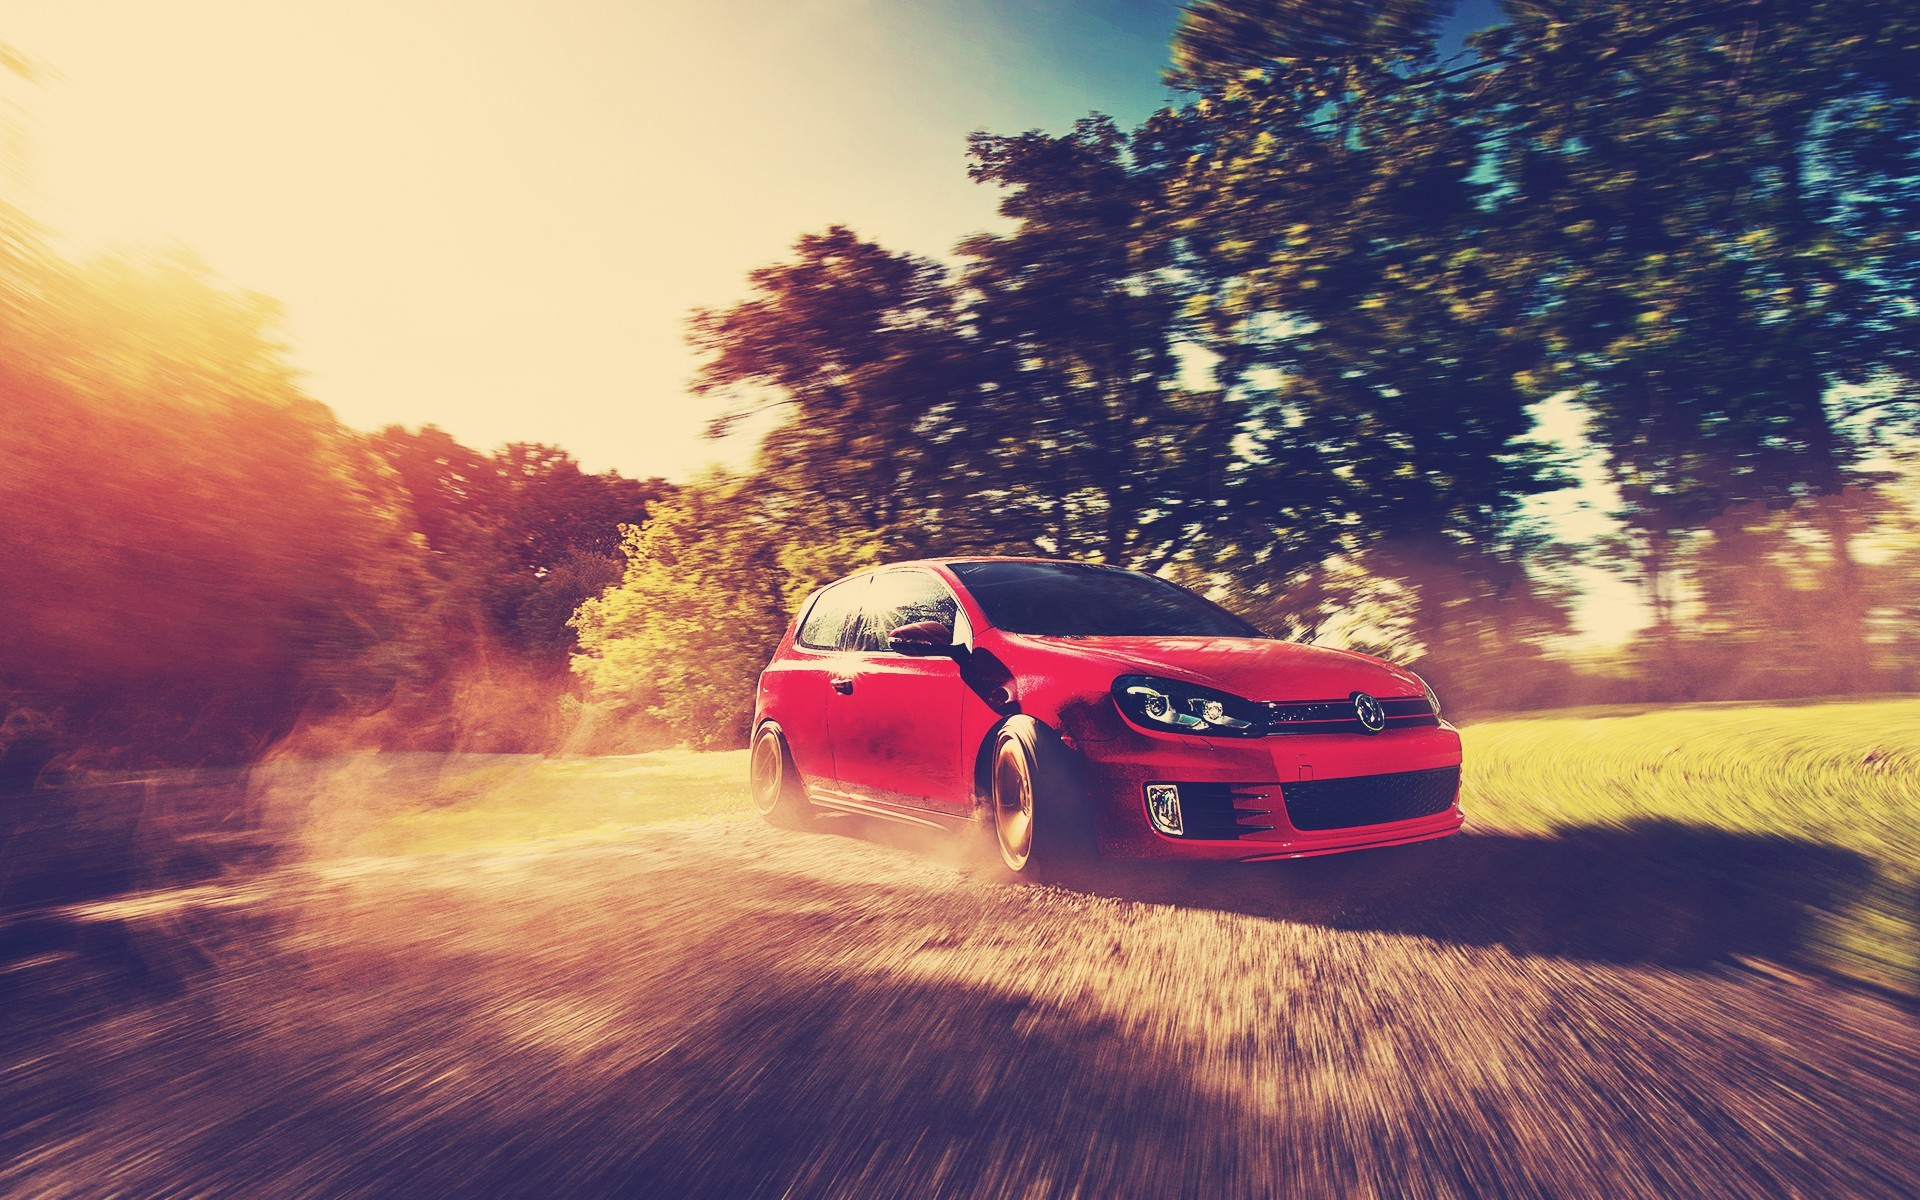 Red Golf GTI Drift Wallpapers And Stock Photos